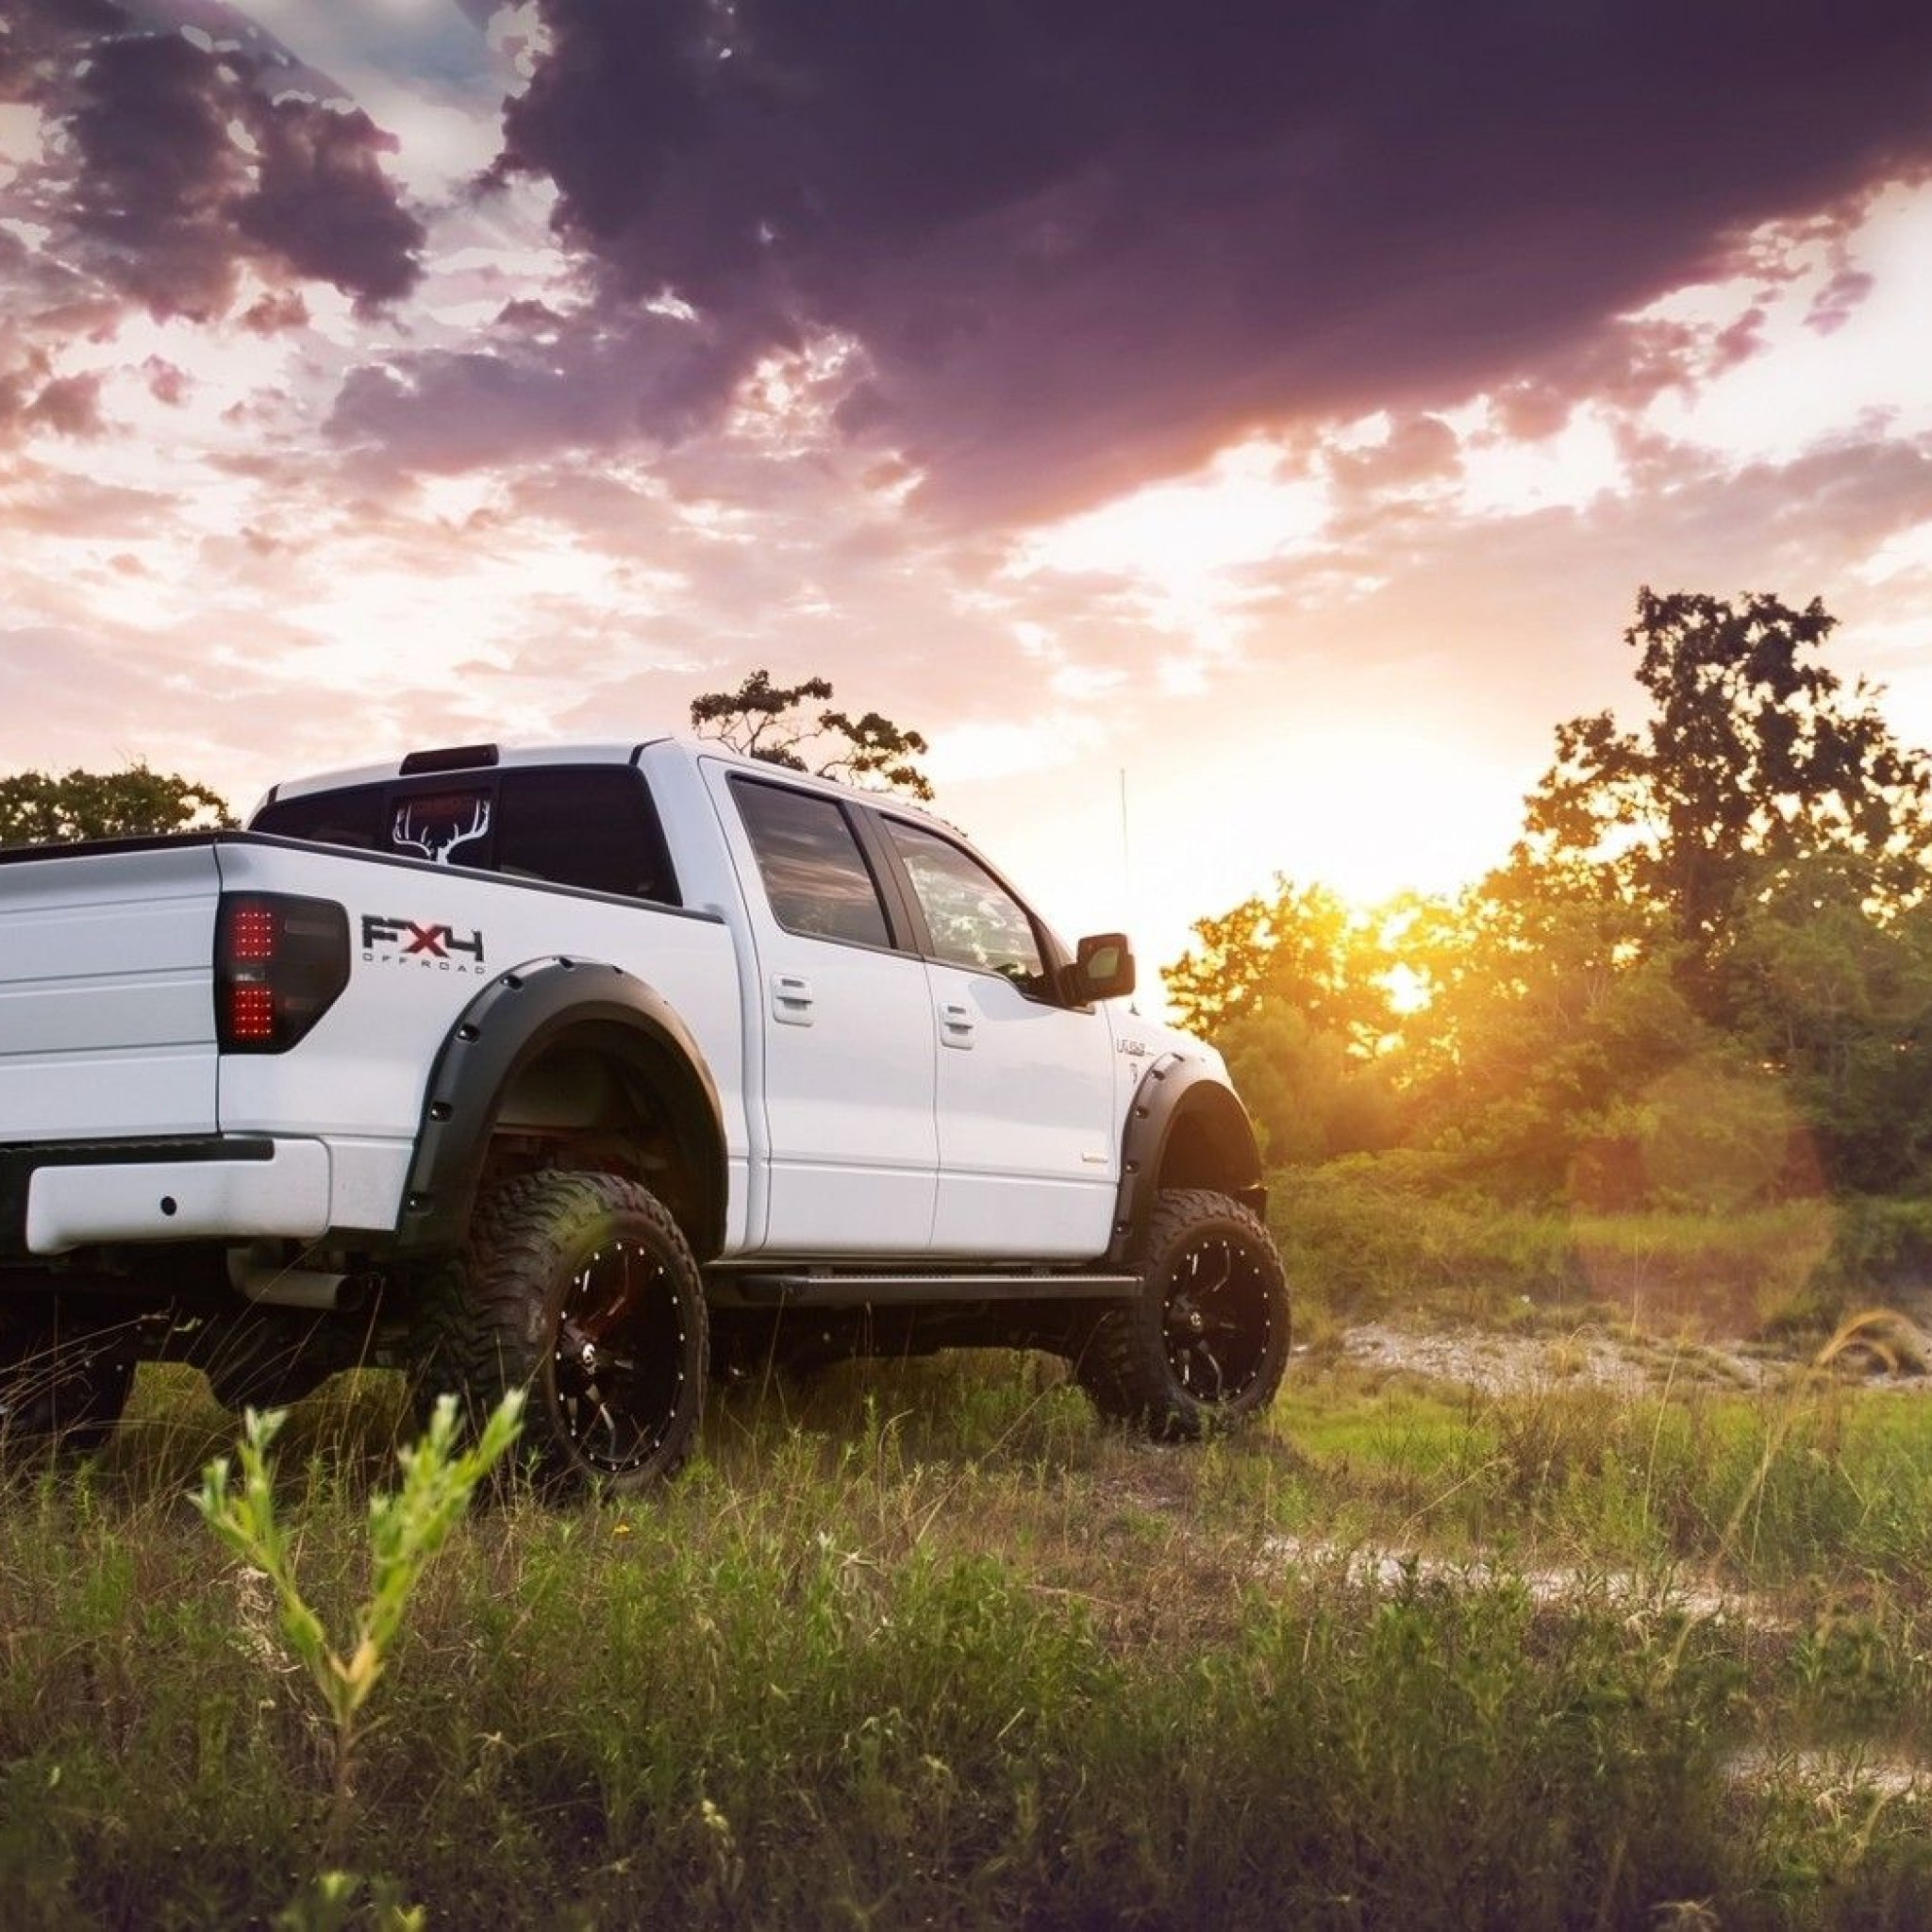 Jacked Up Ford F150 >> Ford Truck Wallpaper Desktop (52+ images)